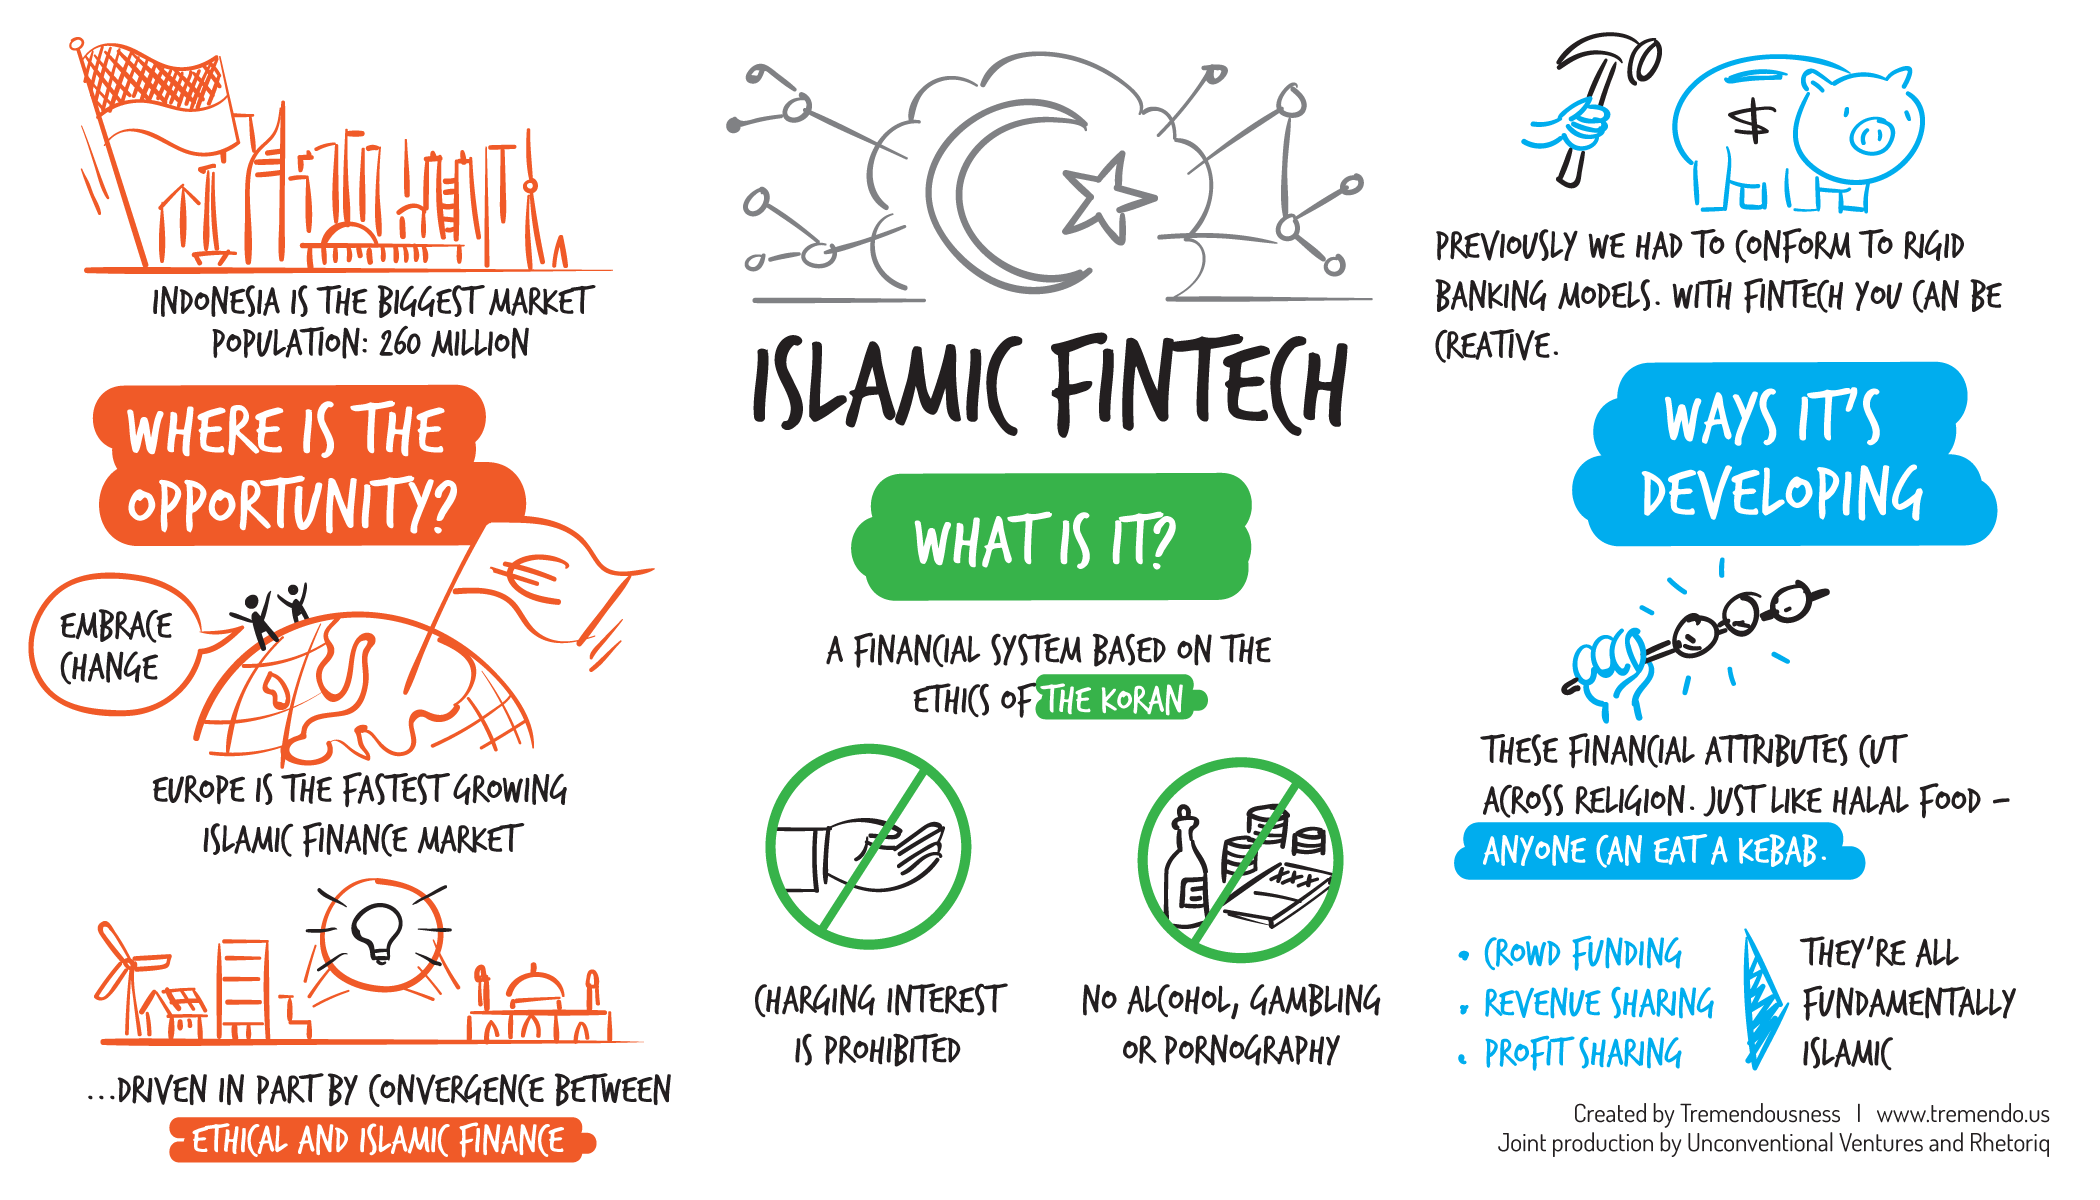 The next frontier: Islamic finance - Read more here…